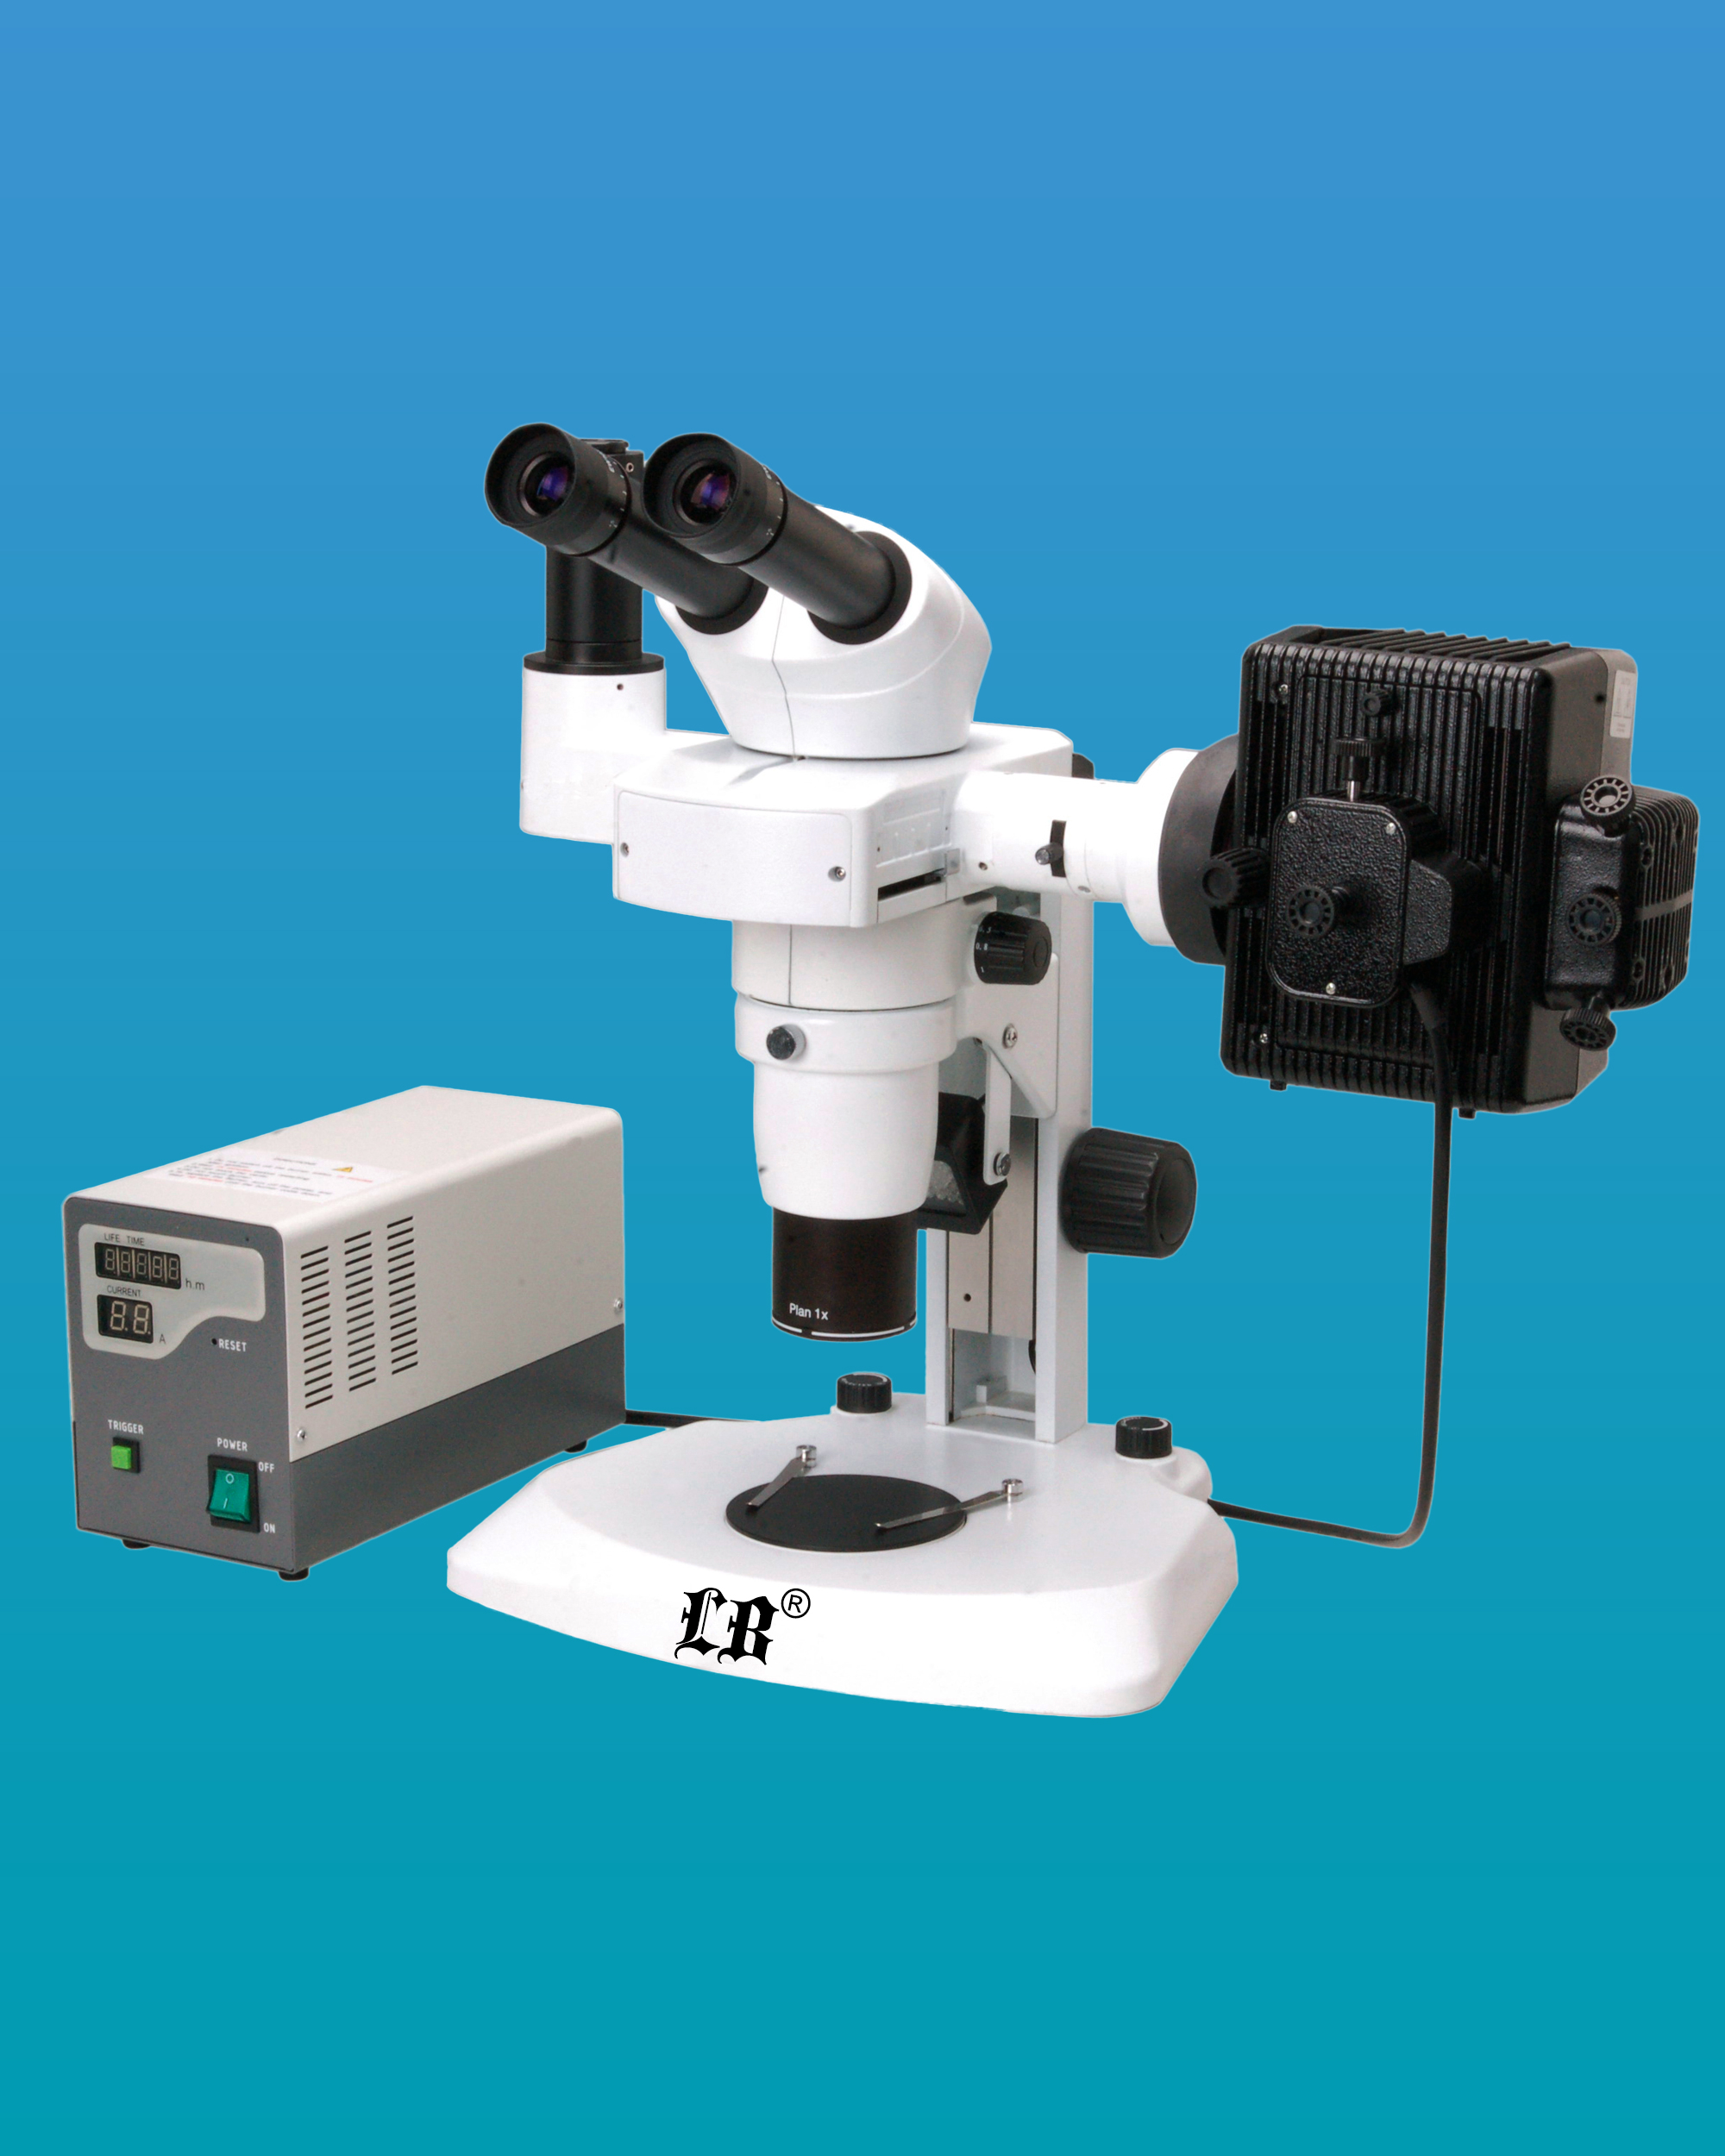 [LB-368] Binocular Zoom Fluorescent Stereo Microscope w/ Infinite Parallel Zoom Optical System & LED Illumination